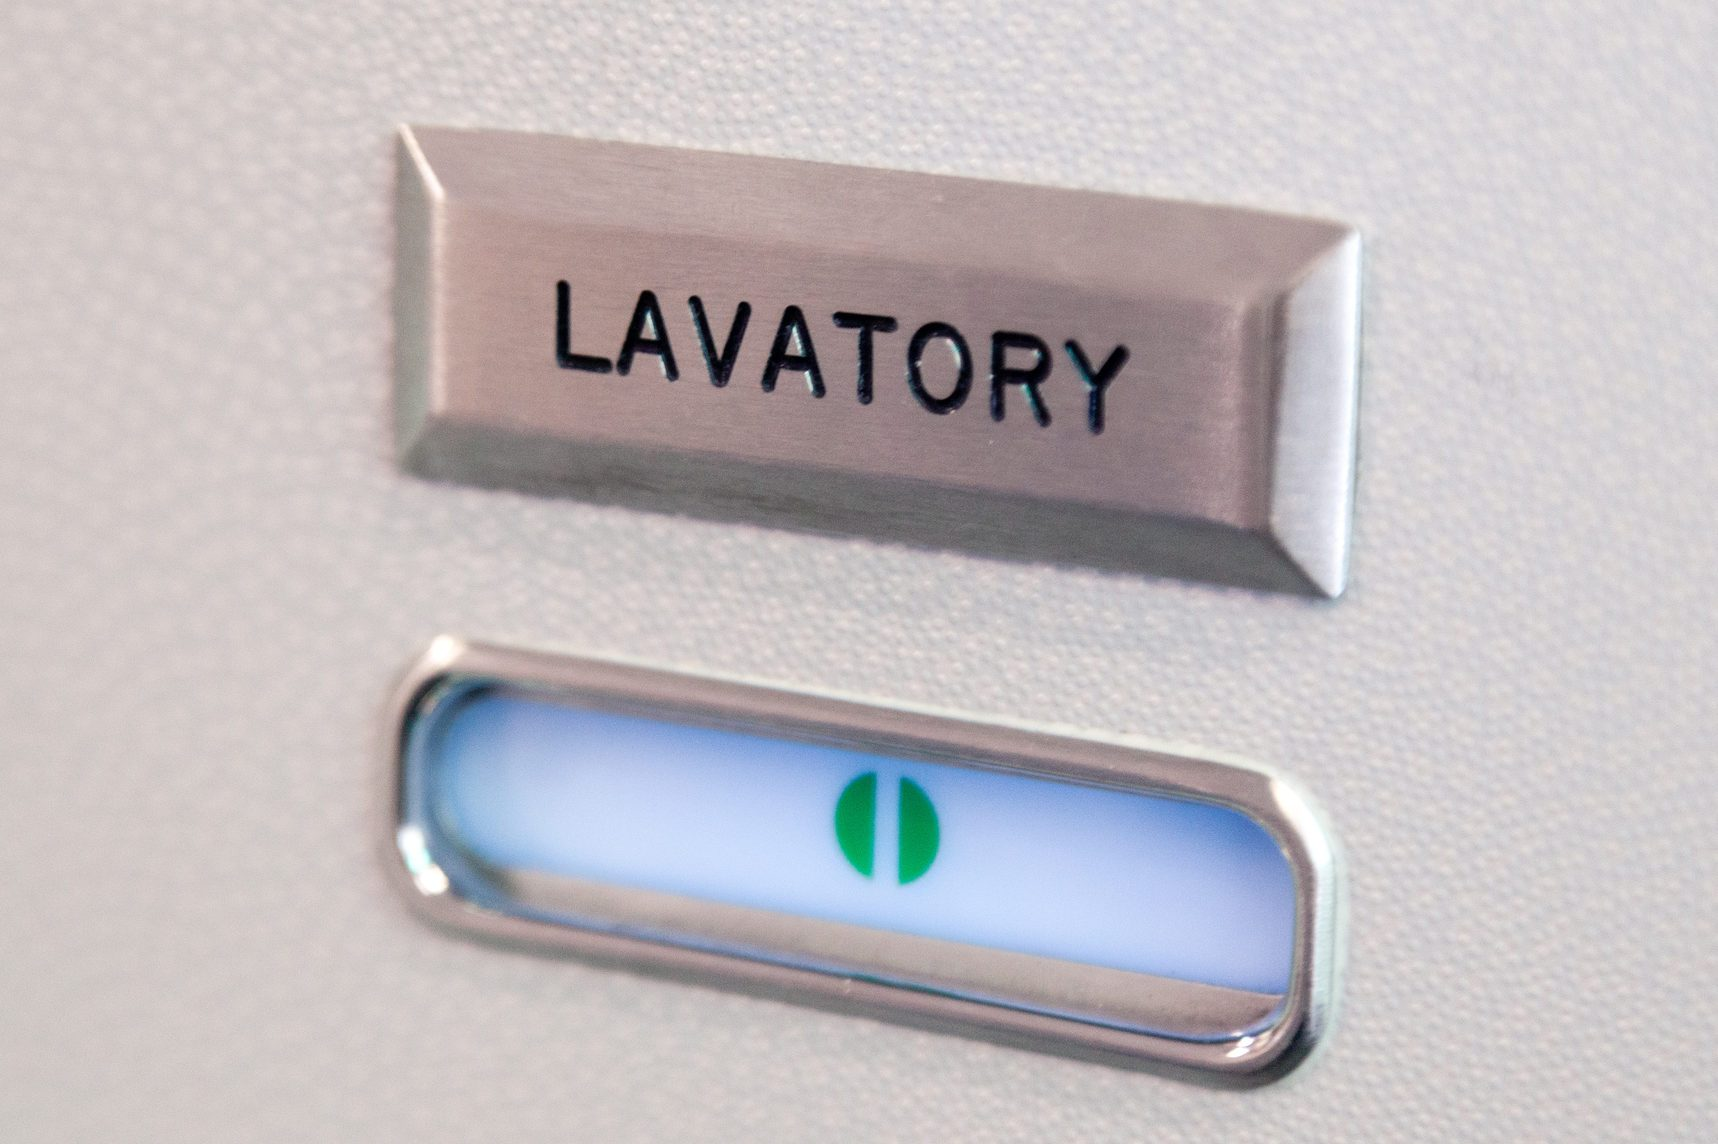 Vacant green sign, vacant symbol on an airplane lavatory door. Raised, brushed metal lavatory sign, recessed plastic vacant sign. Toilet room, wc, closet on airplane board